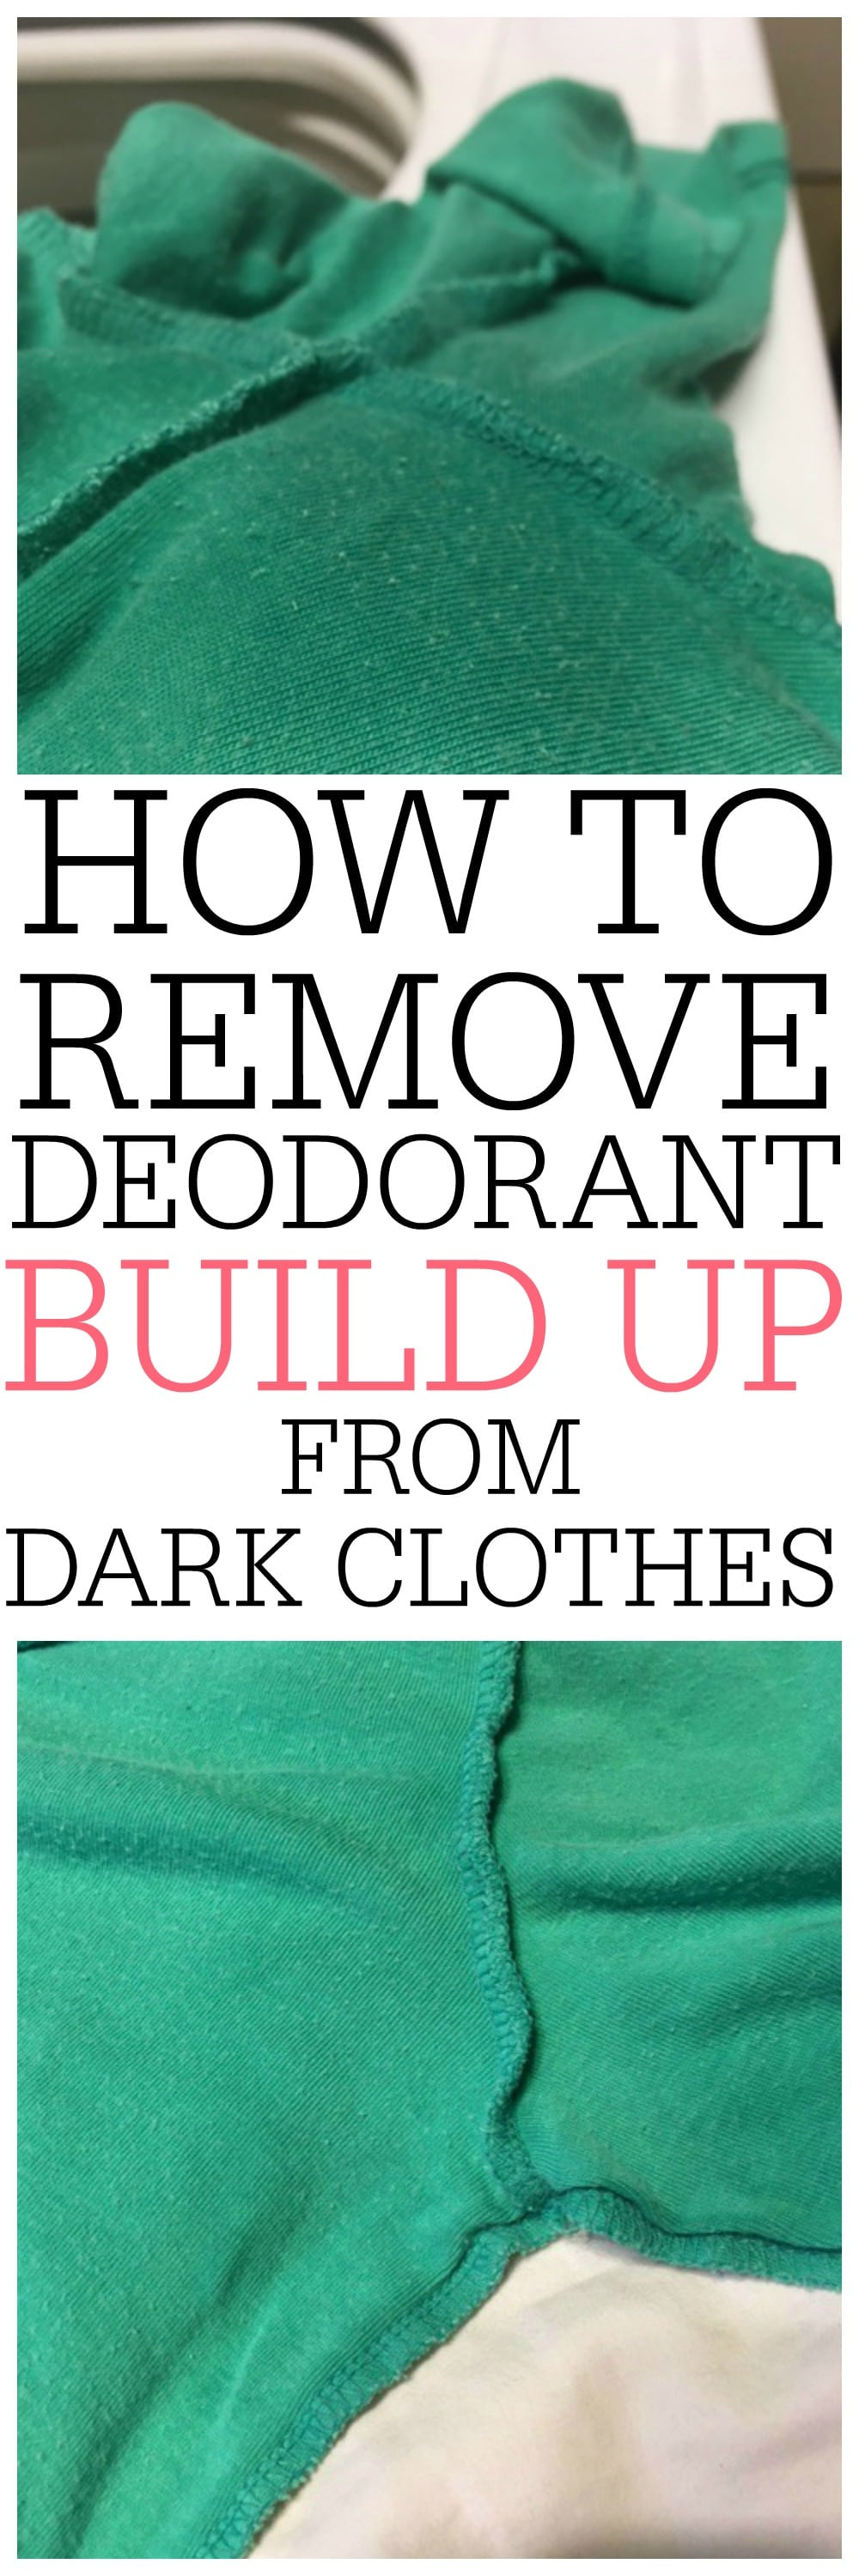 How To Remove Deodorant Build Up From Dark Clothes Frugally Blonde